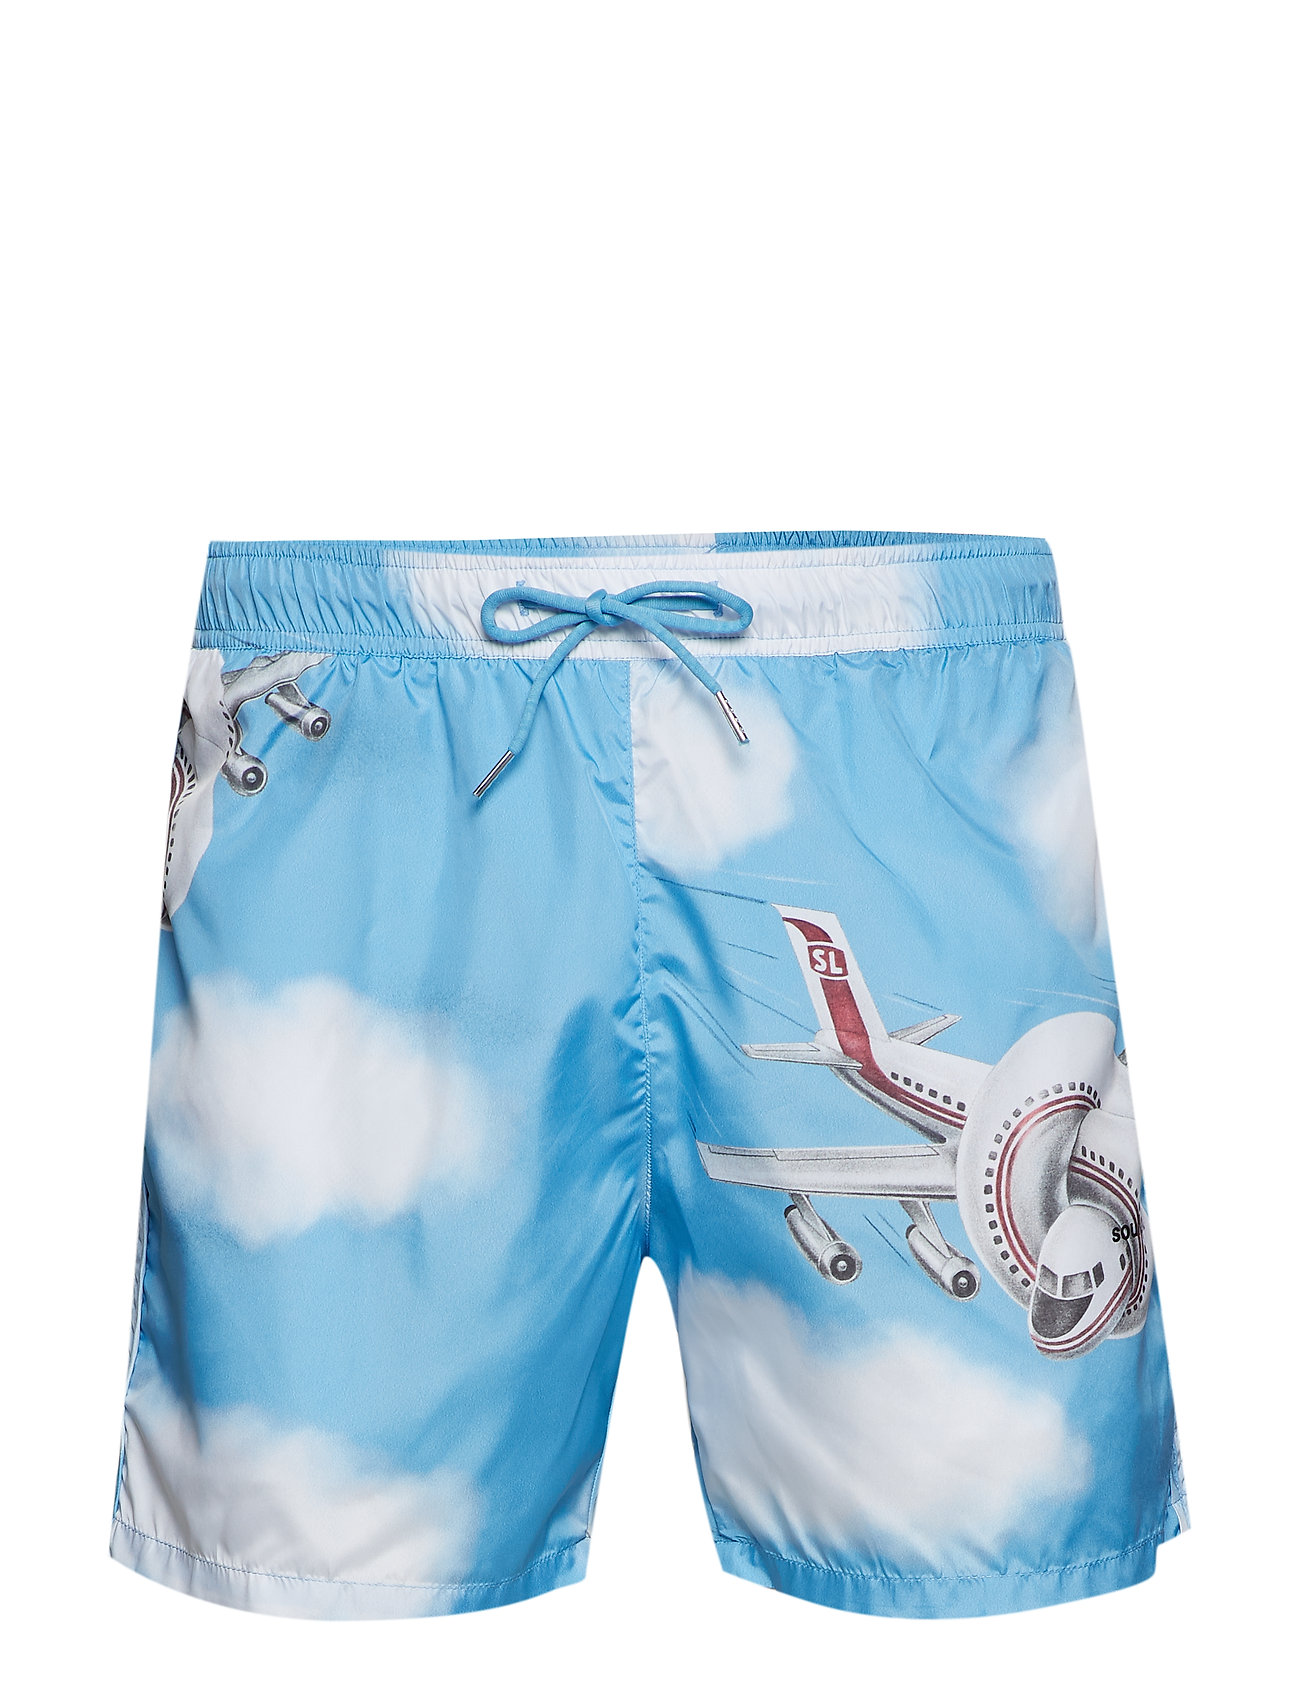 Soulland WILLIAM ALL OVER PRINTED SWIM SHORTS - MULTI